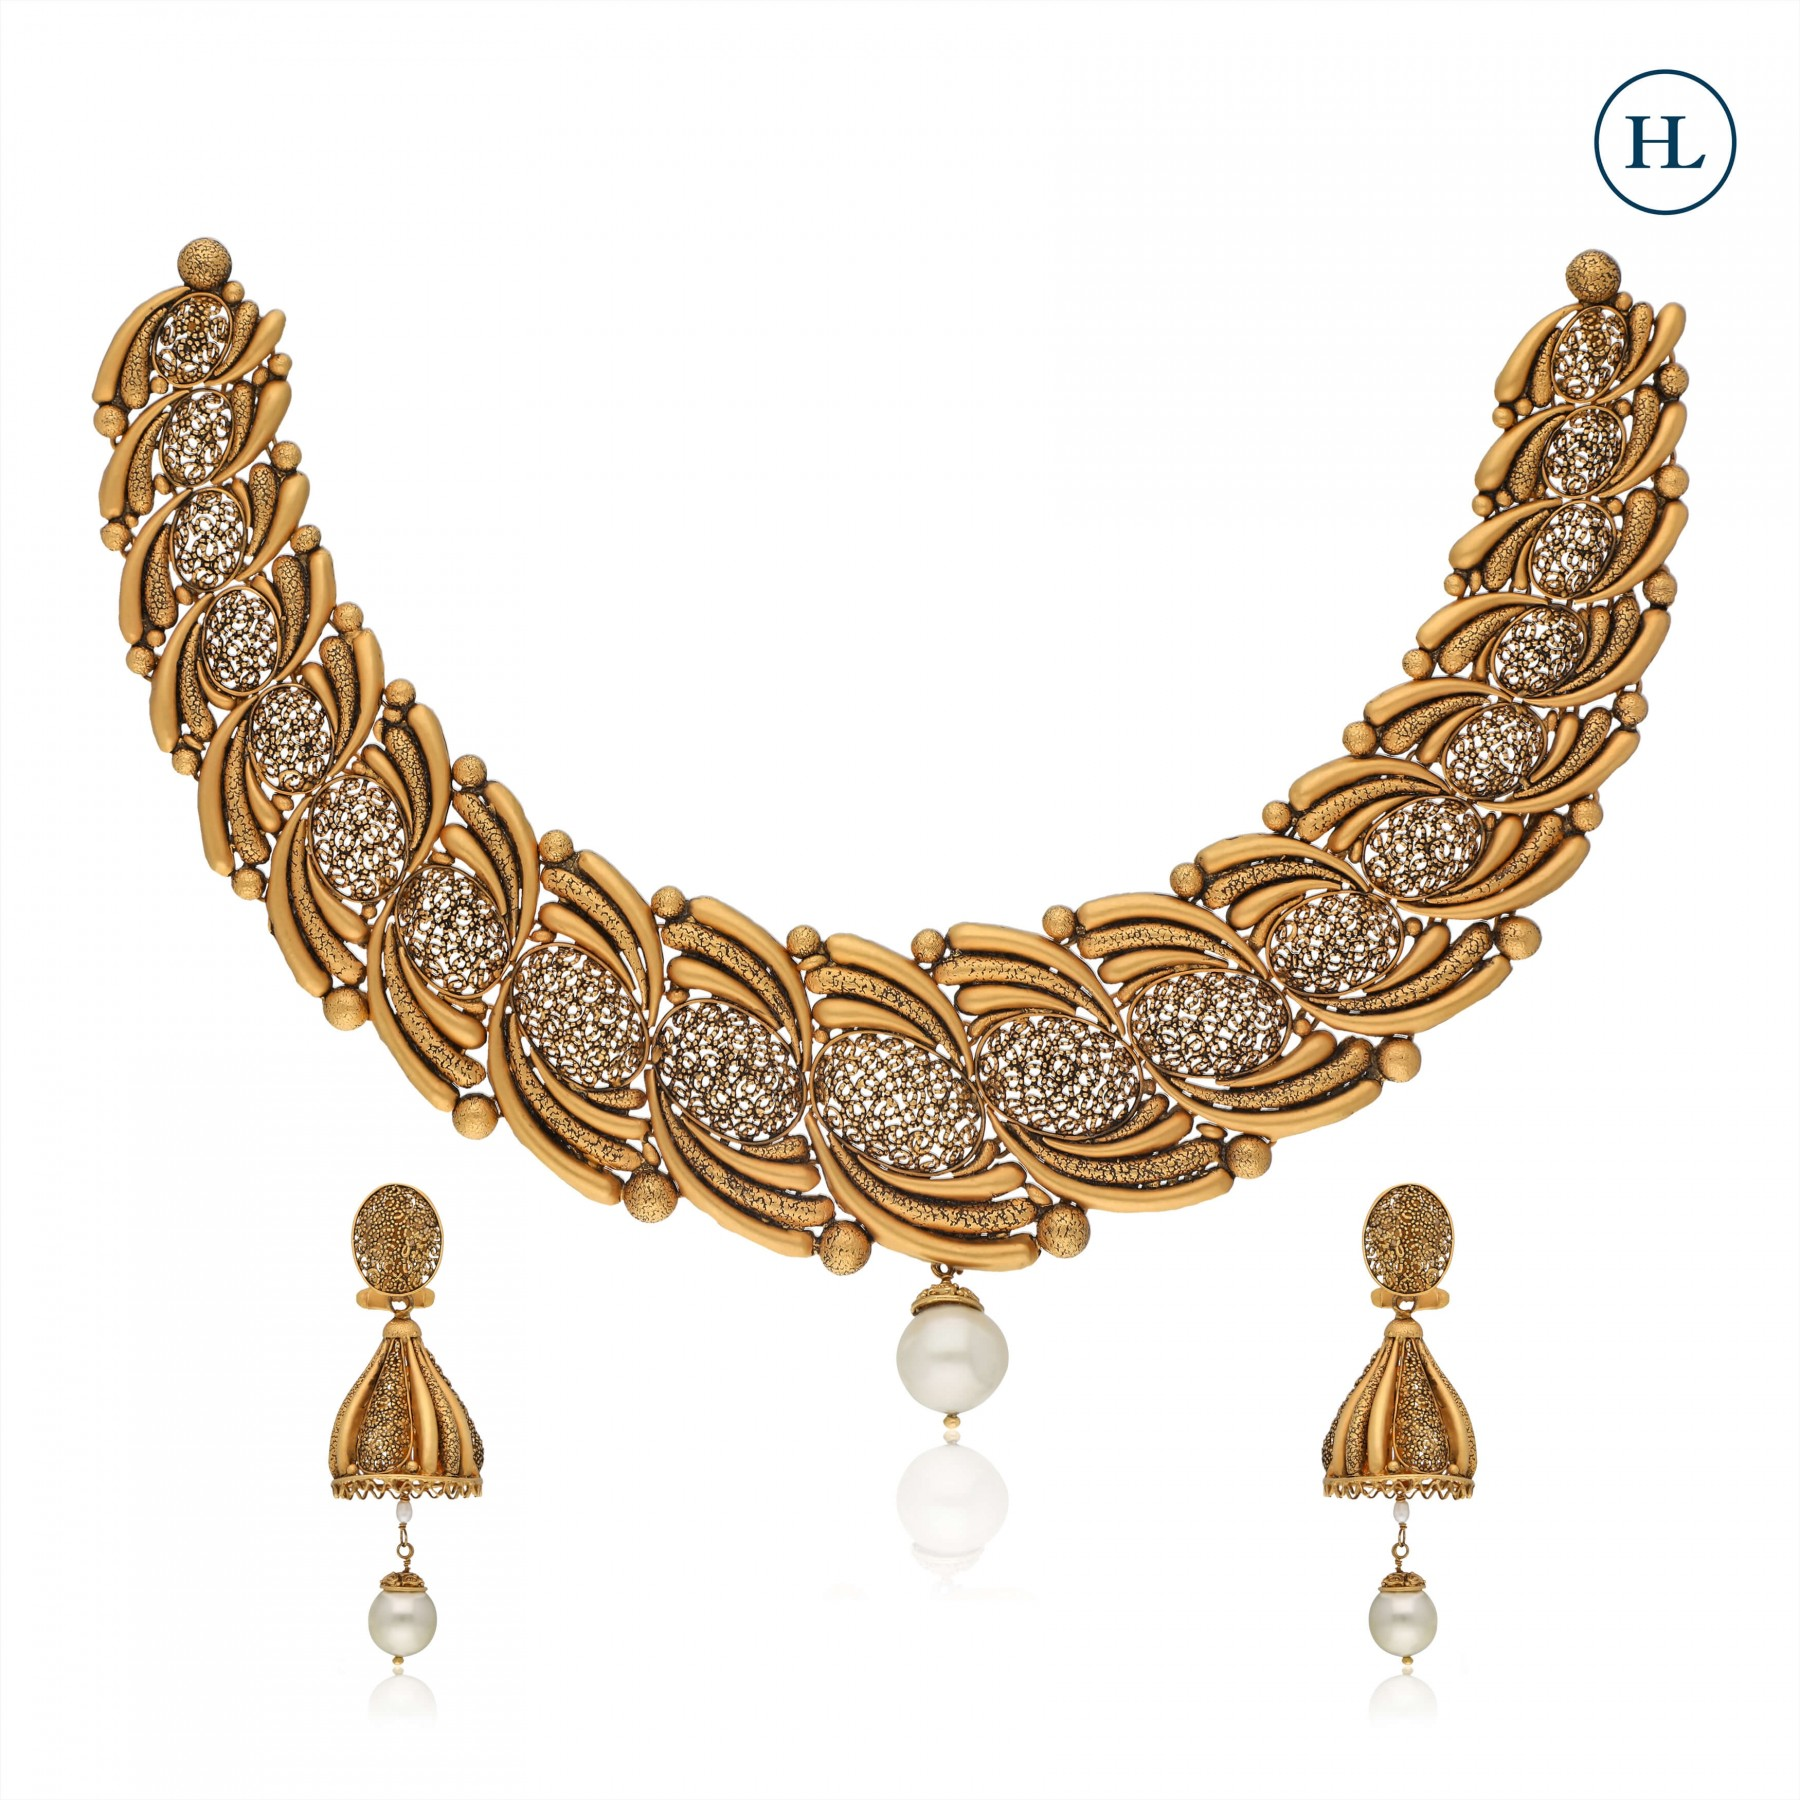 Antique-Styled Pearl & Gold Necklace Set